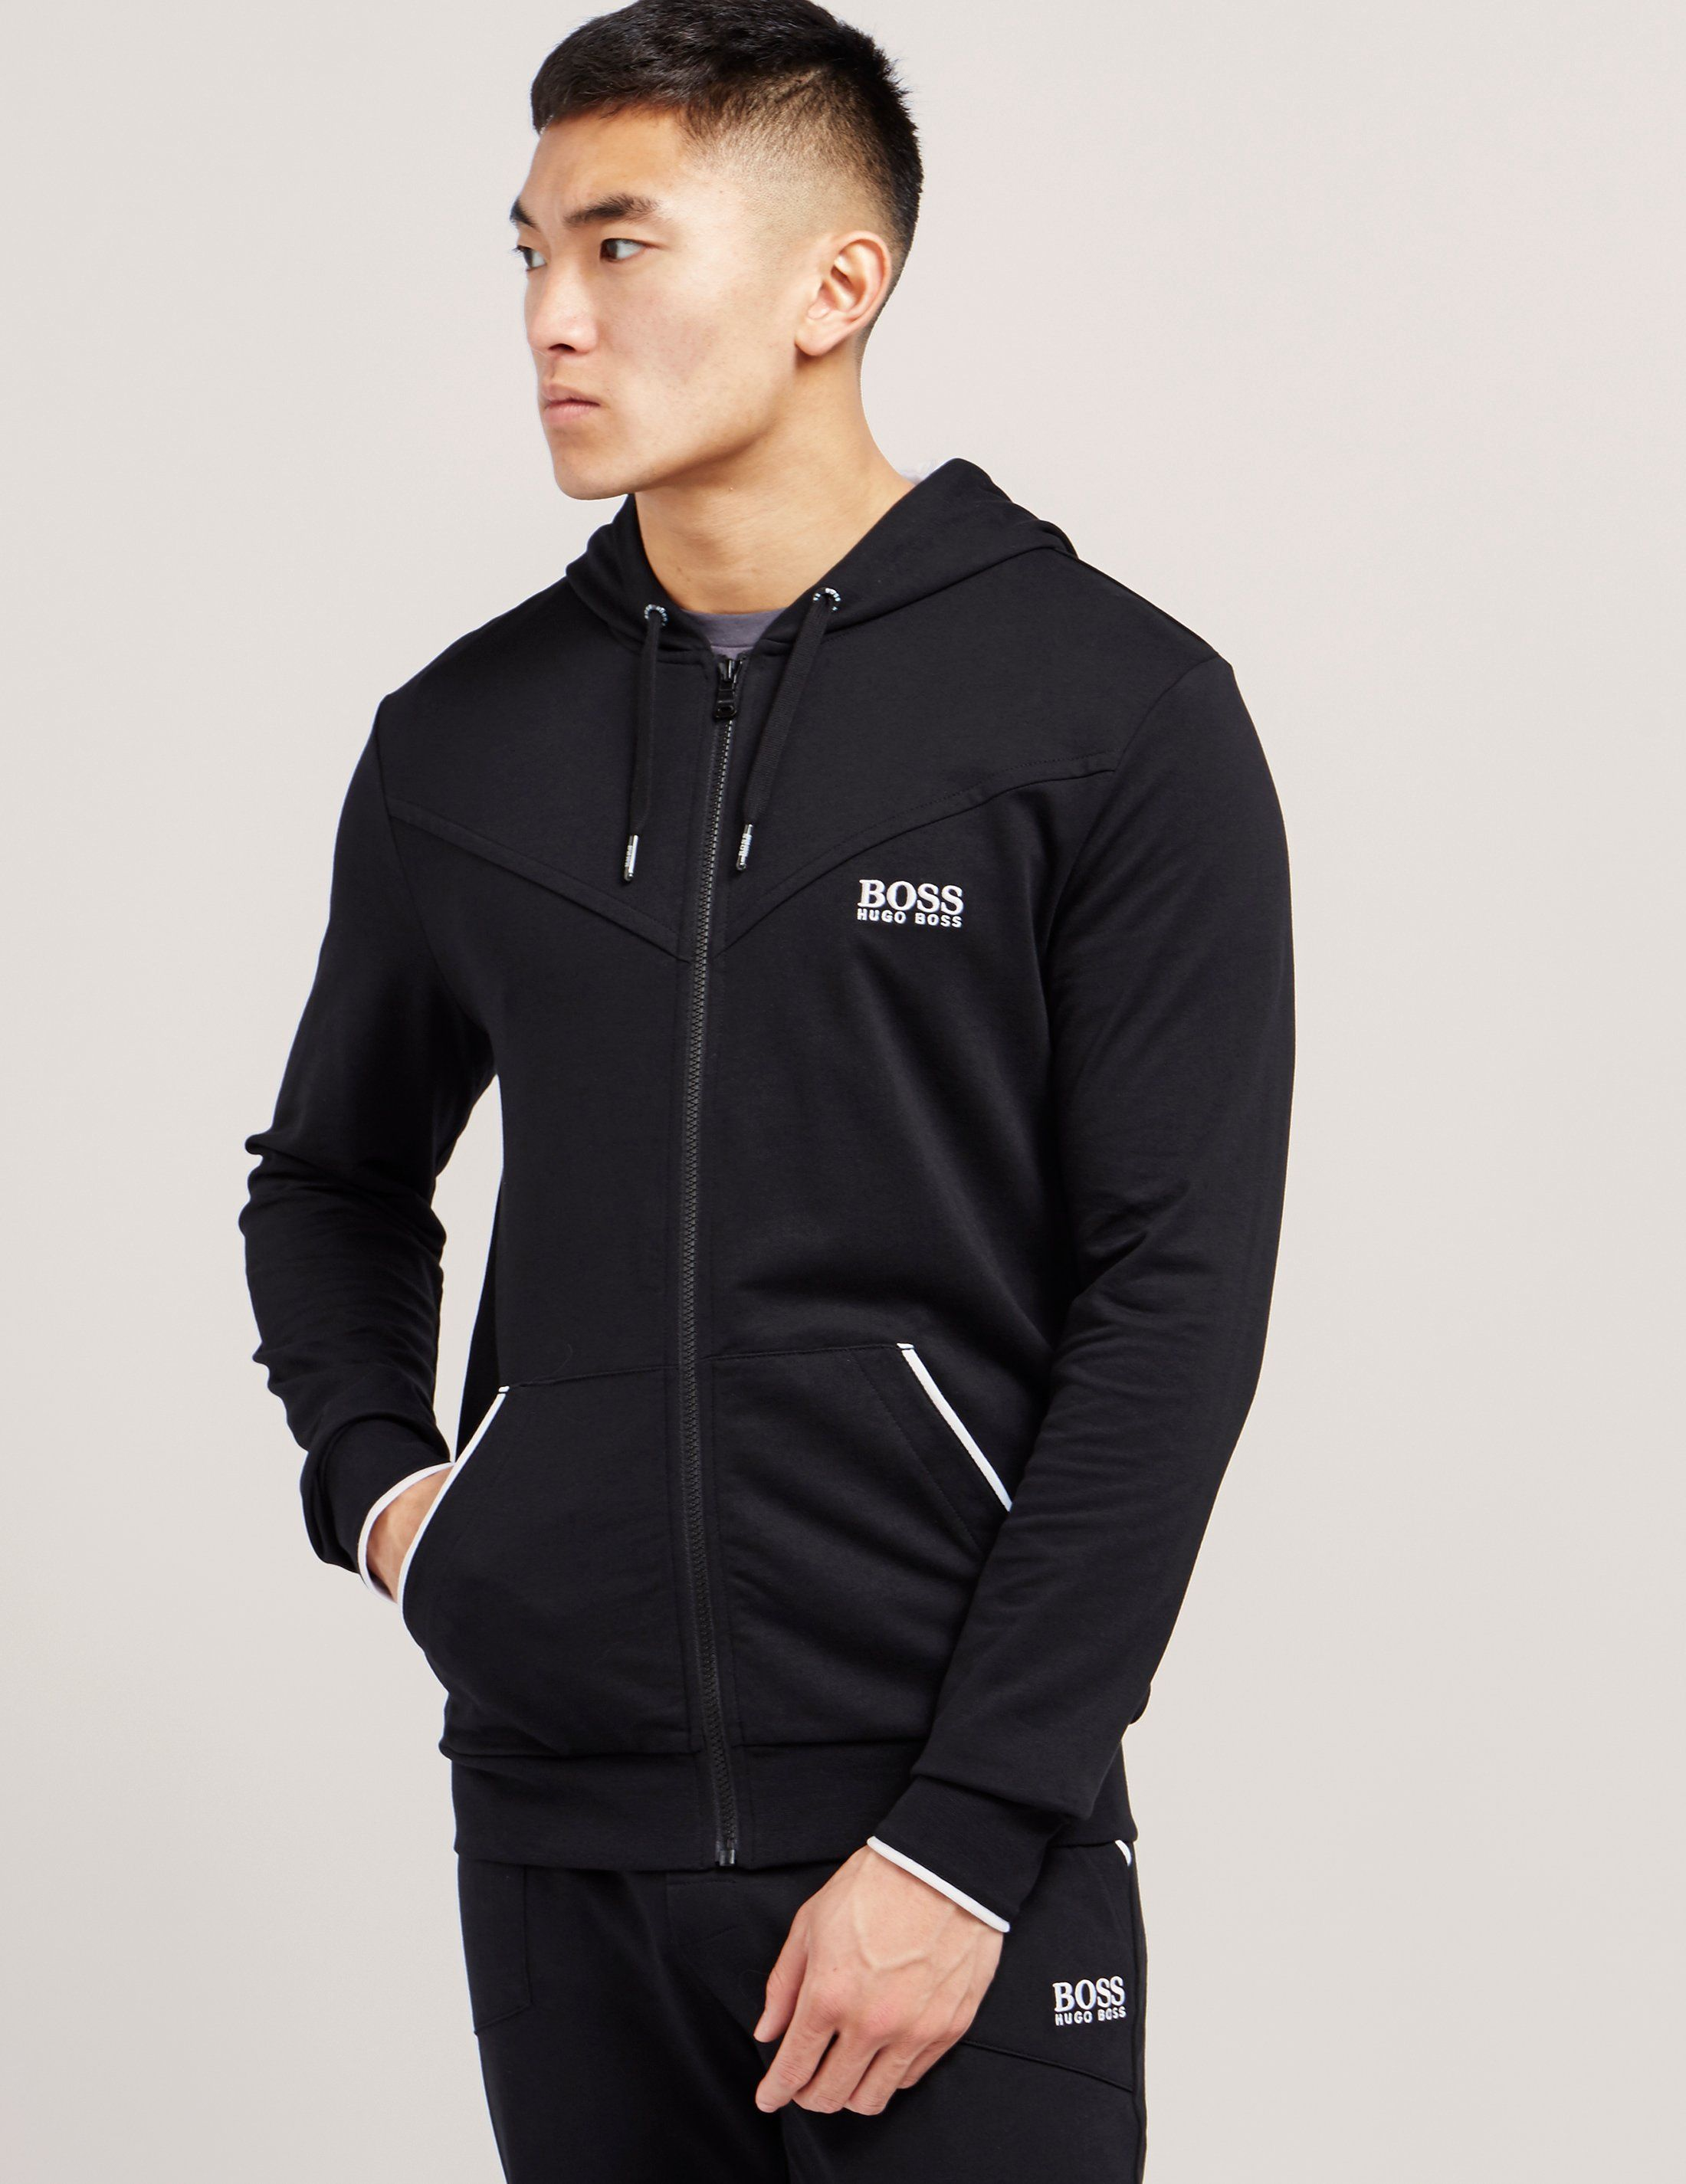 BOSS Full Zip Hoody